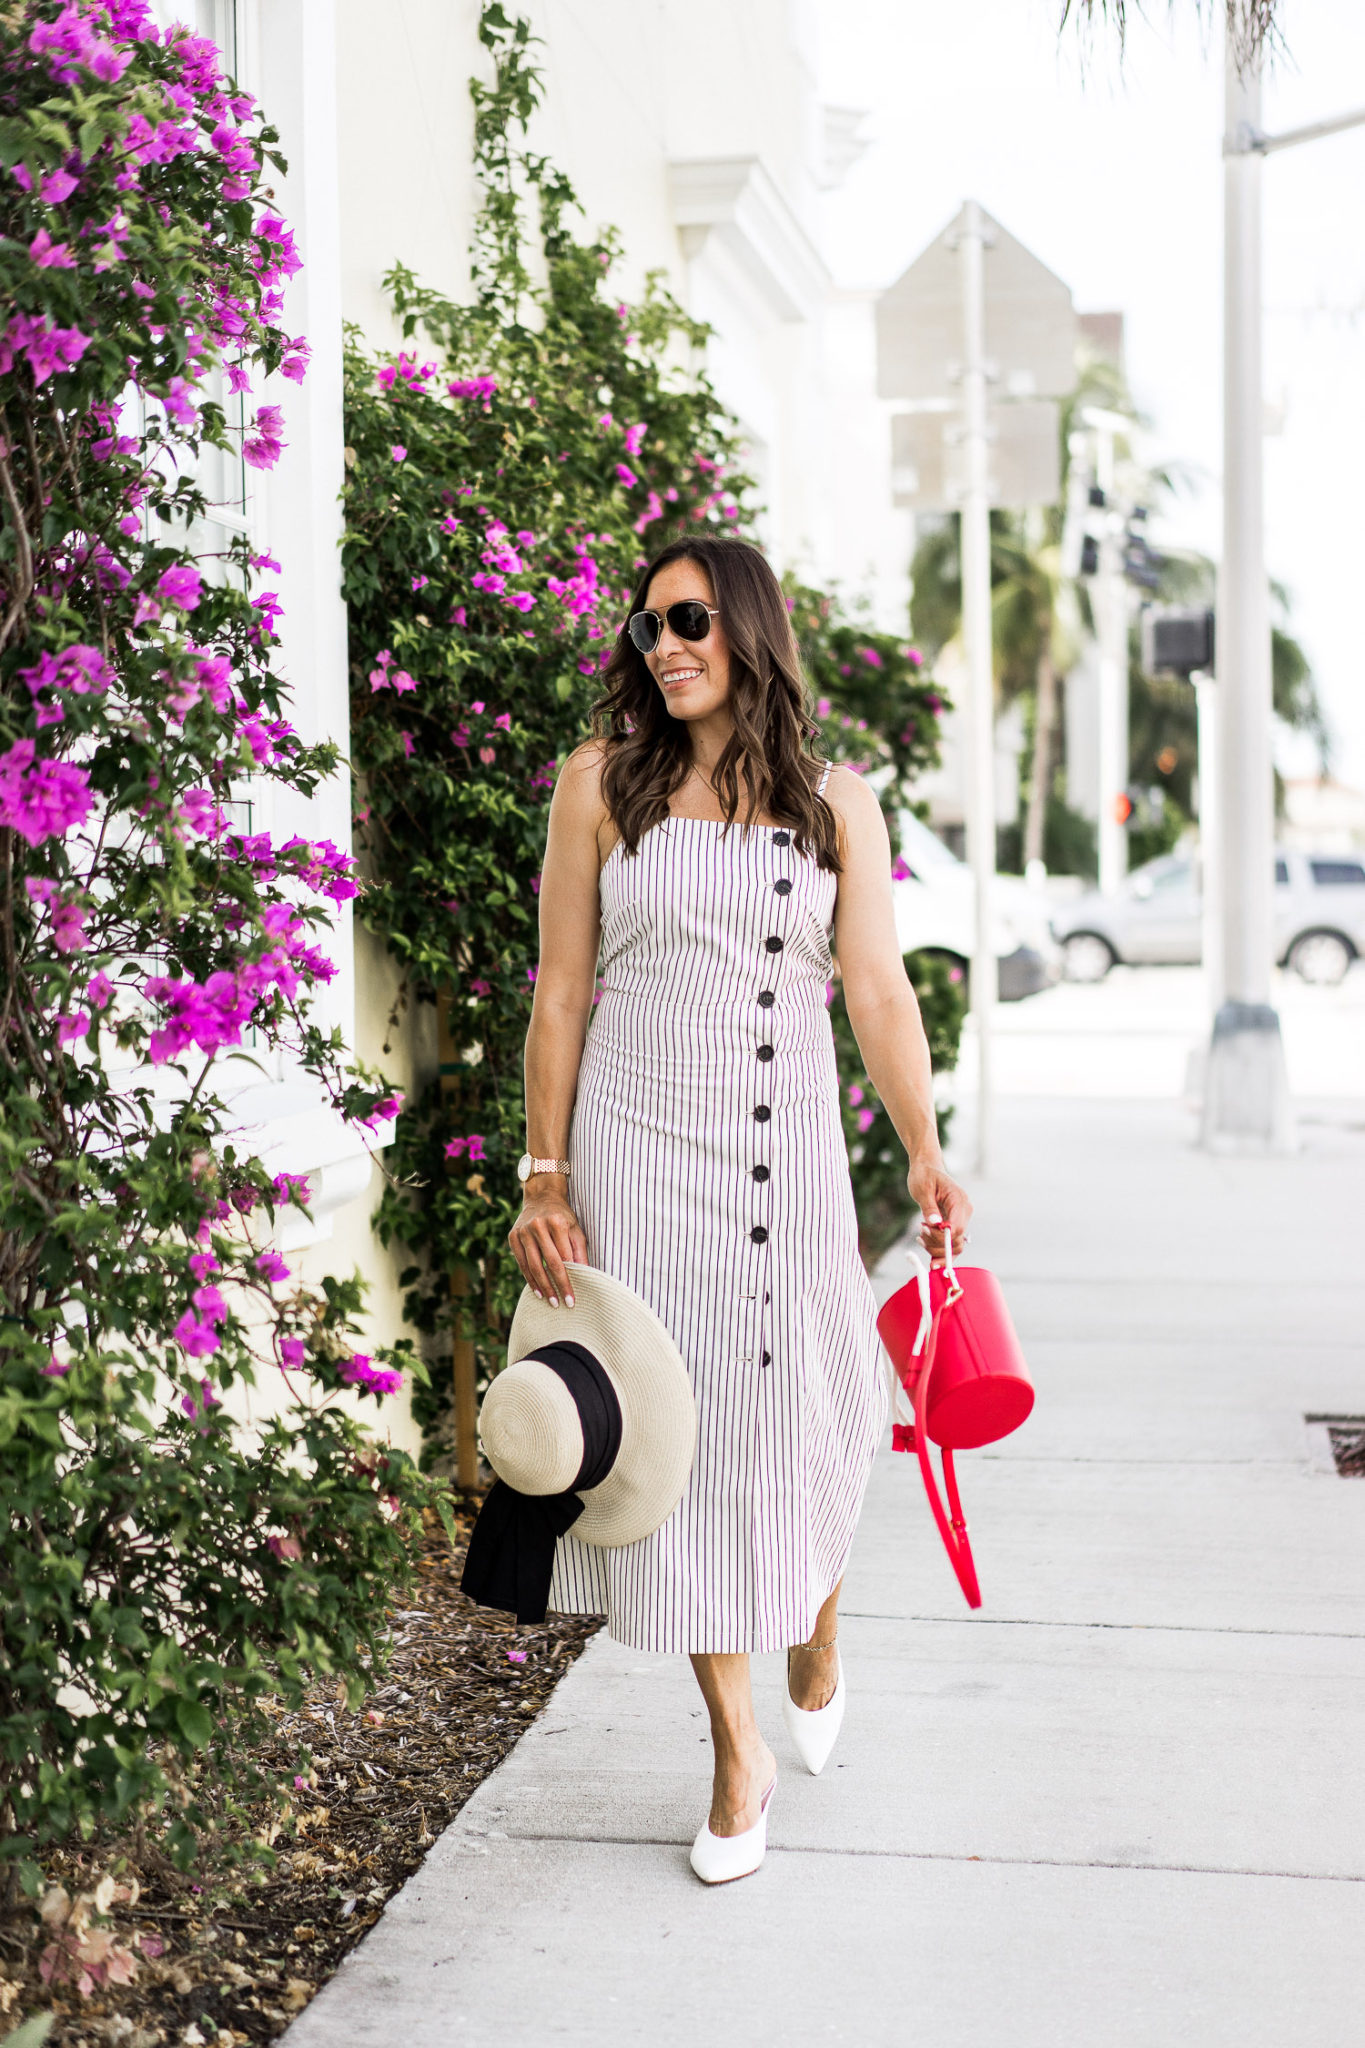 e37cca8dd3b A review of the new Target x Who What Wear Collection for Summer 2018  including the